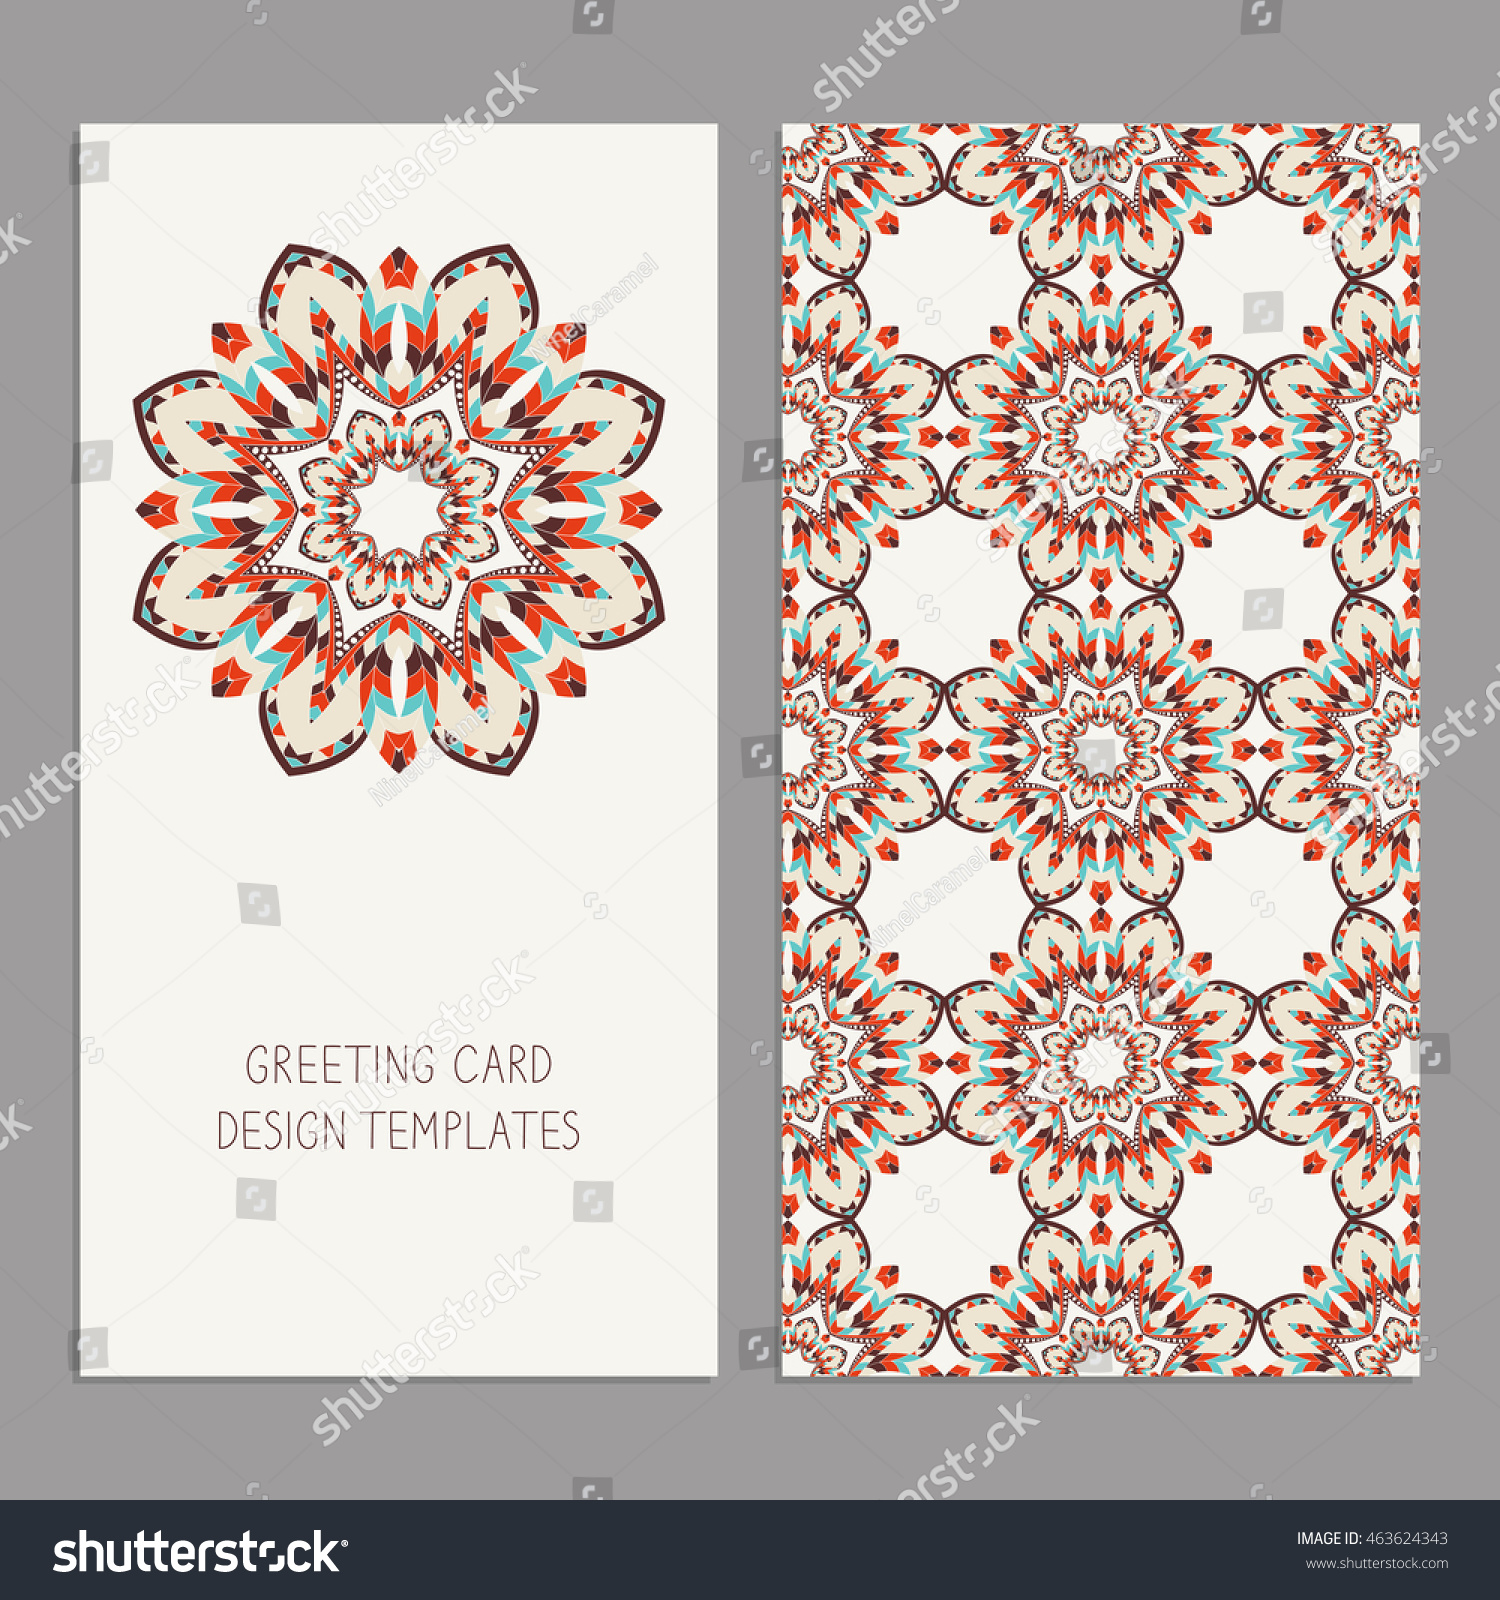 Templates Greeting Business Cards Floral Motifs Stock Vector (2018 ...